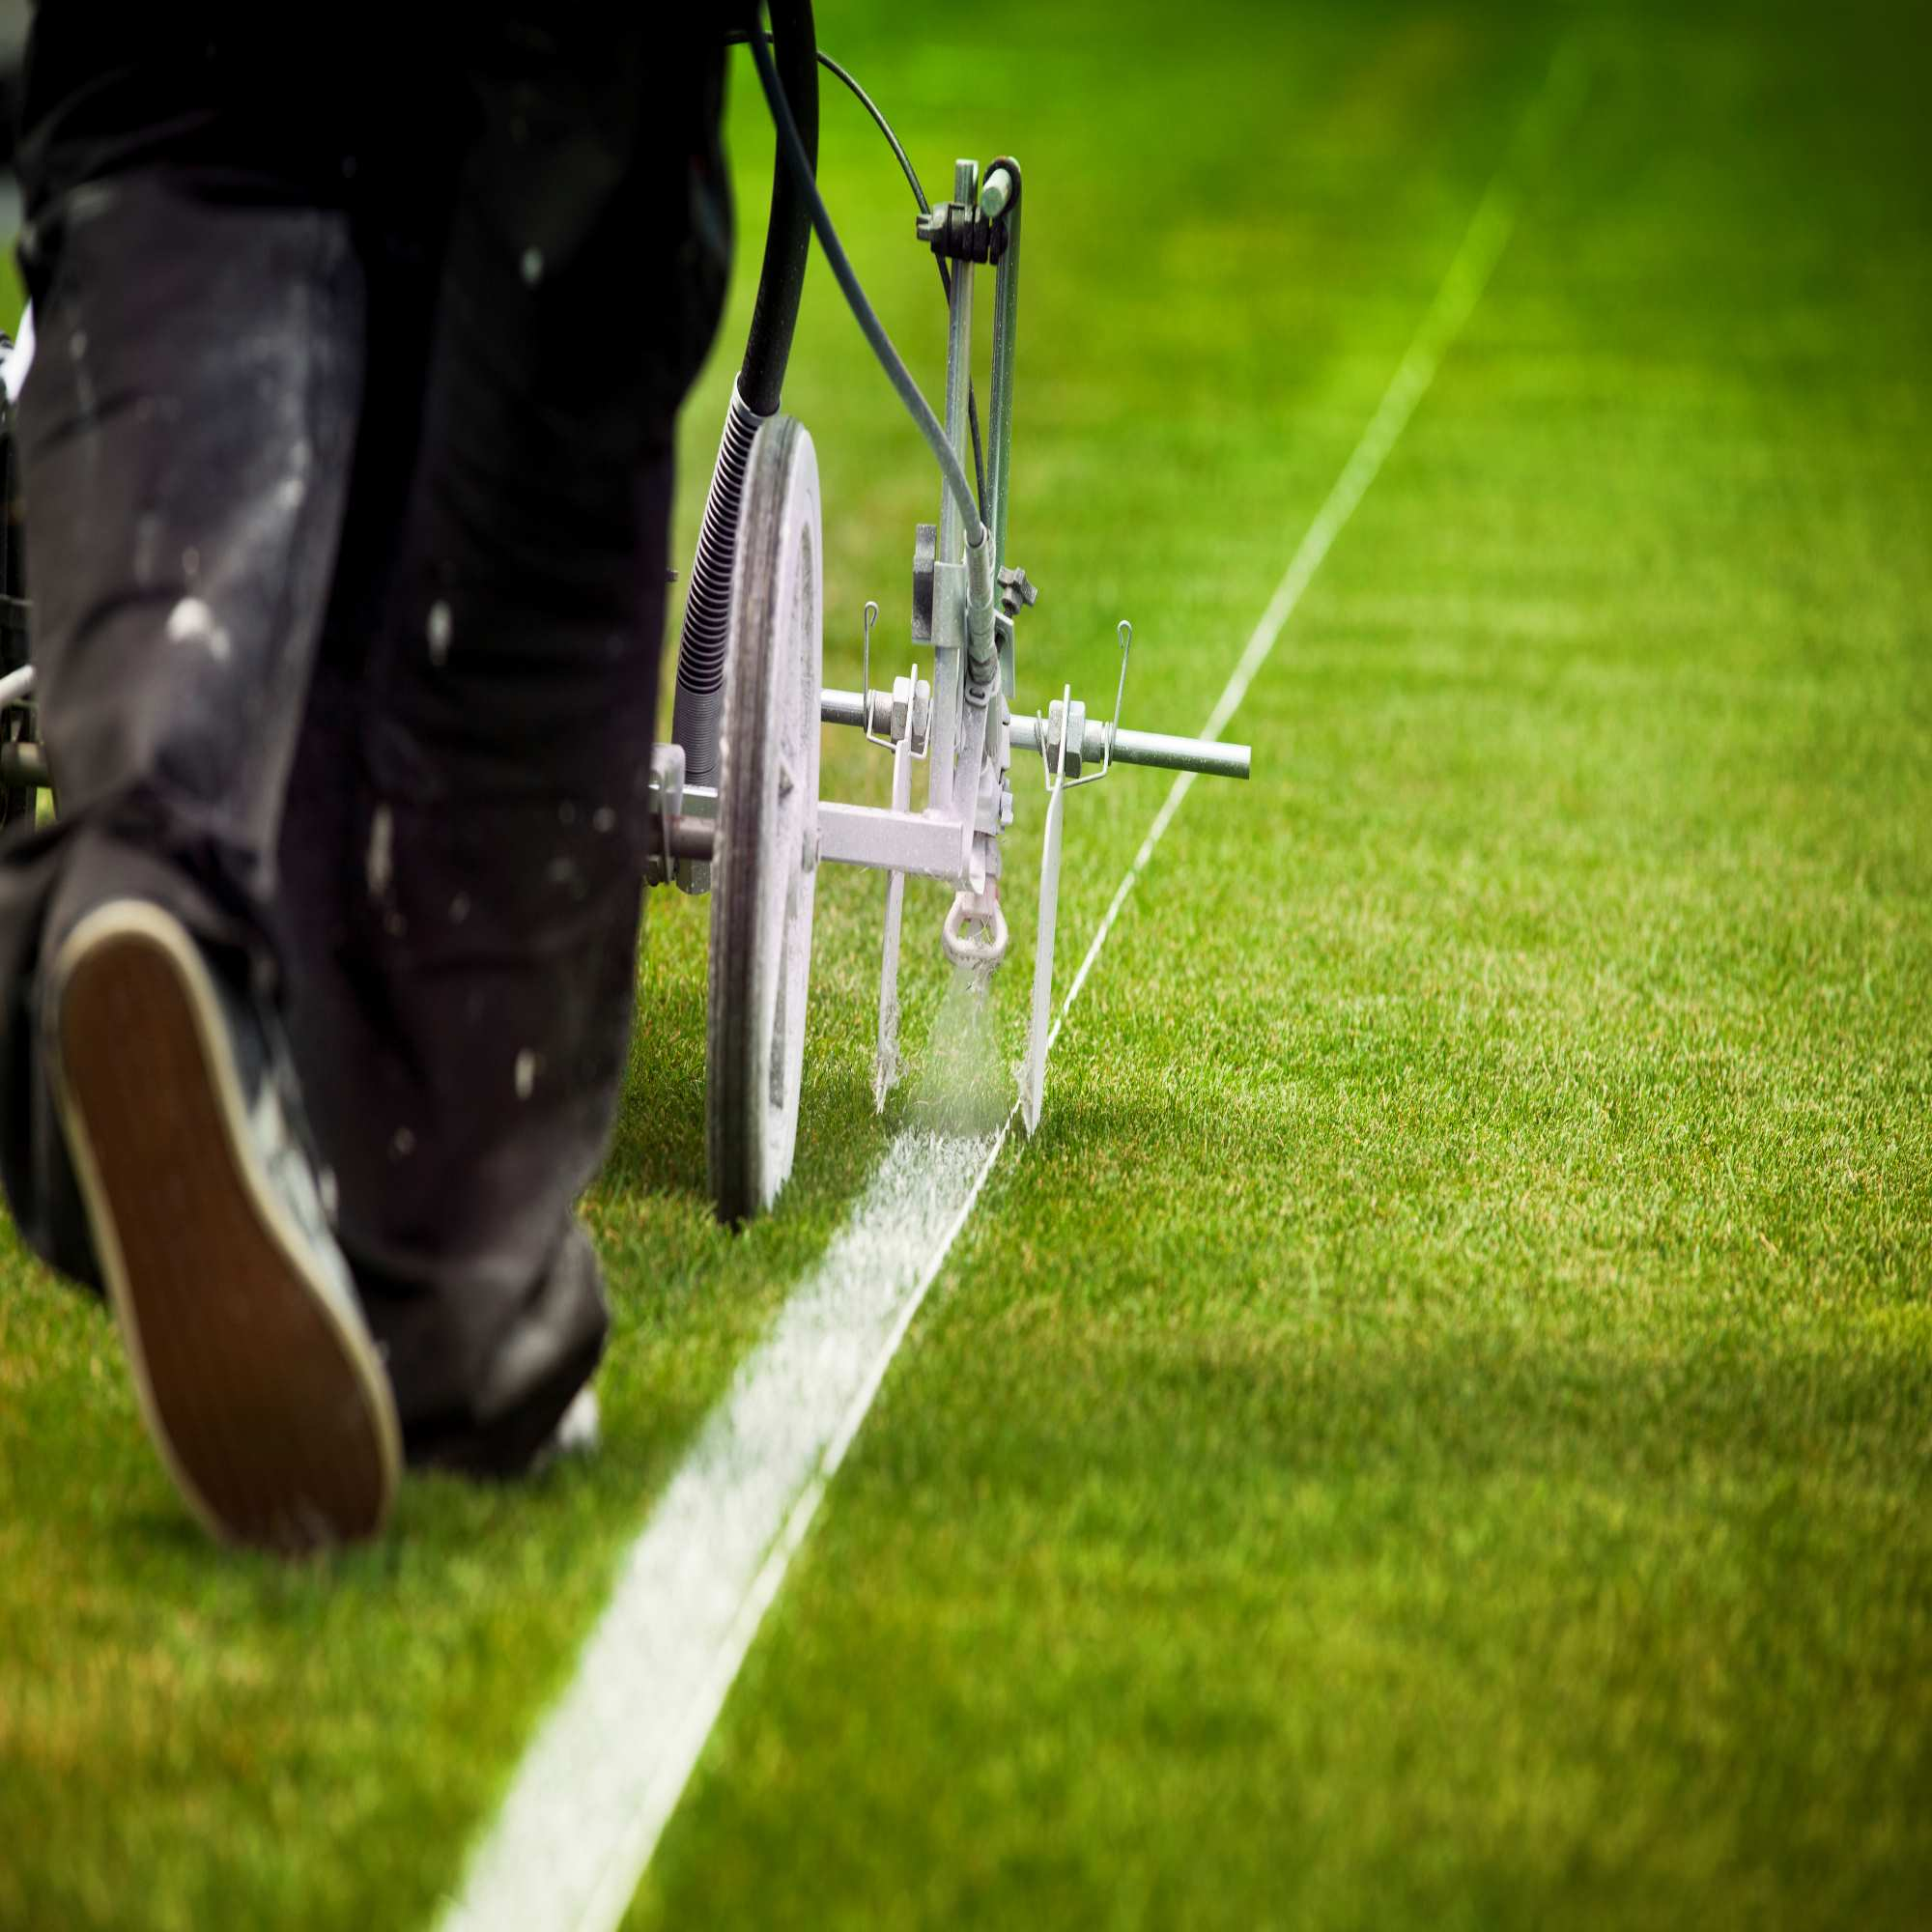 Pitch Line Marking